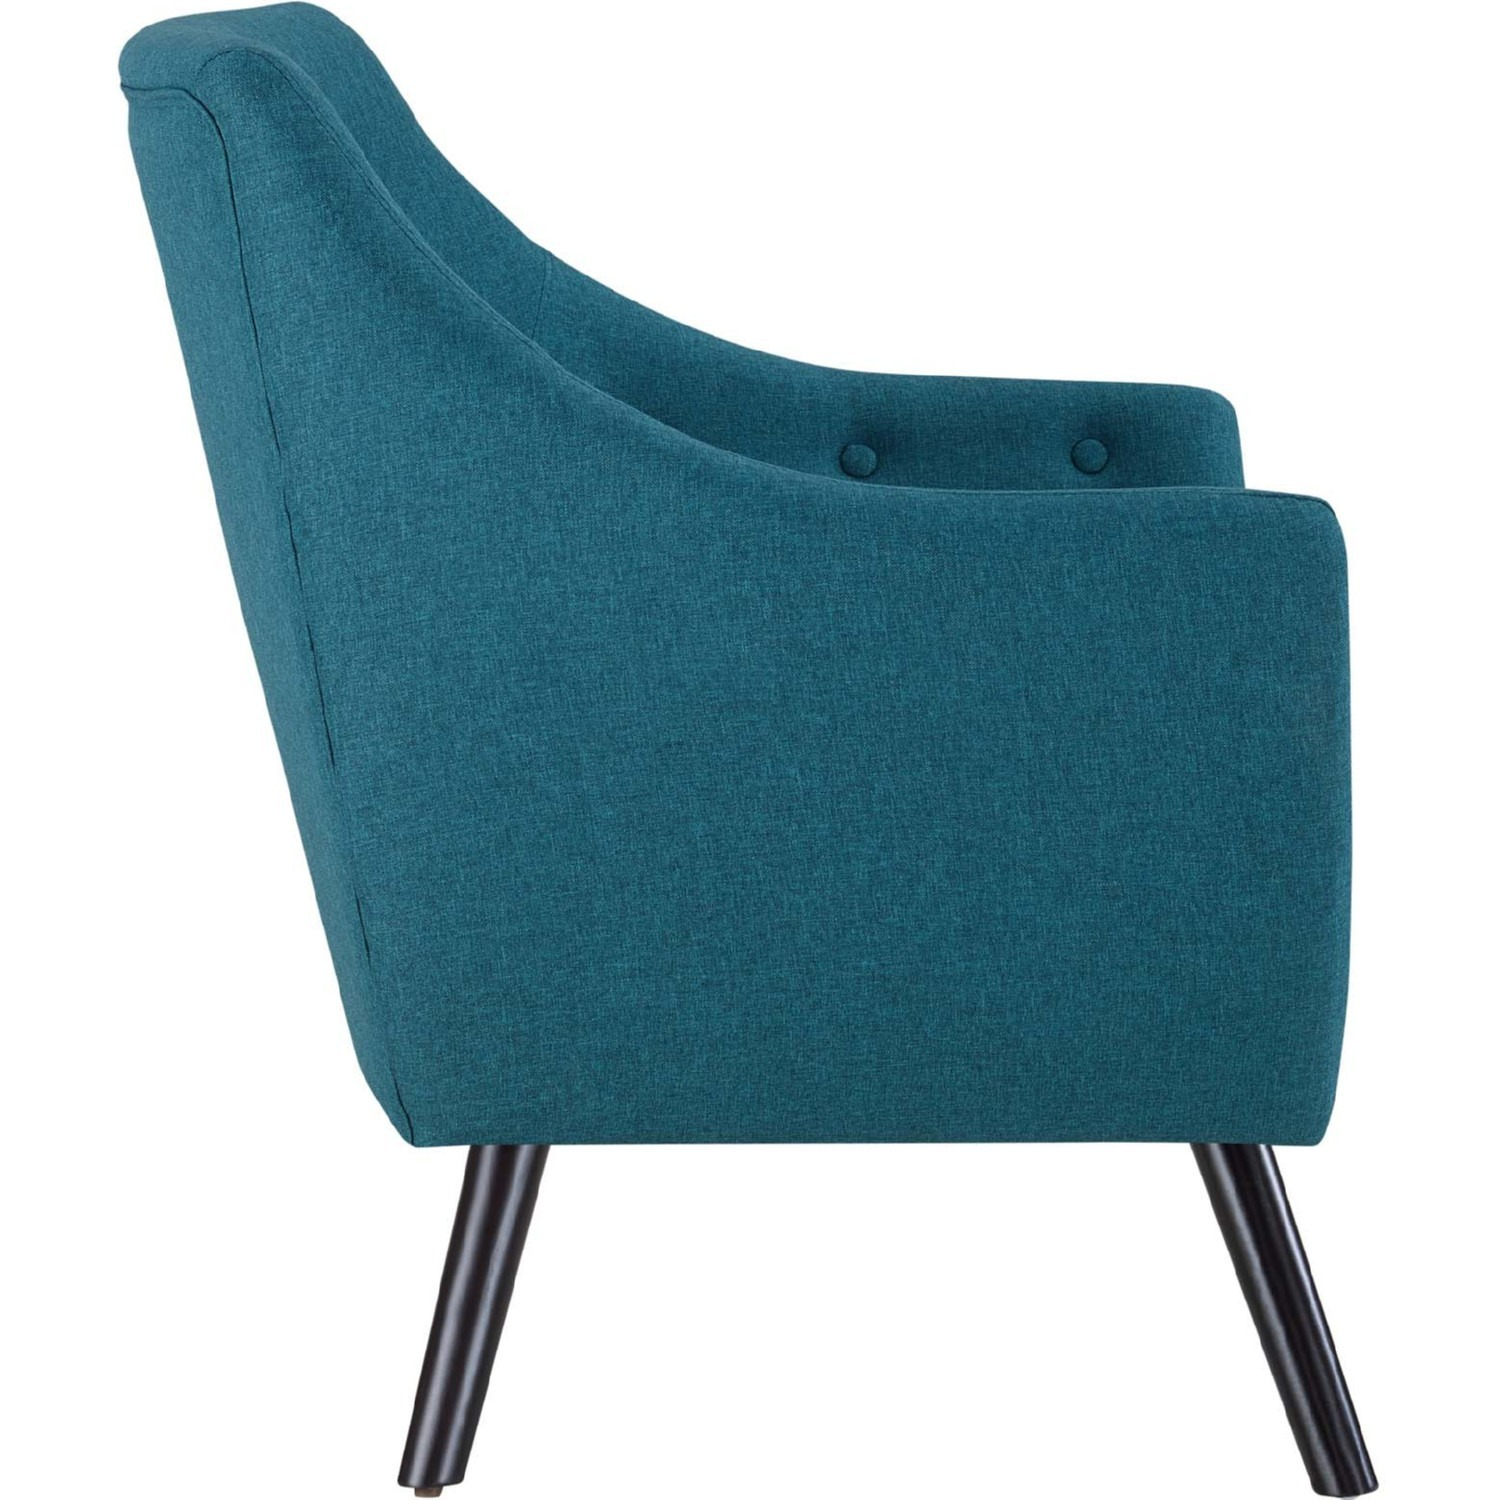 Armchair In Teal Fabric W/ Tufted Buttons - image-2